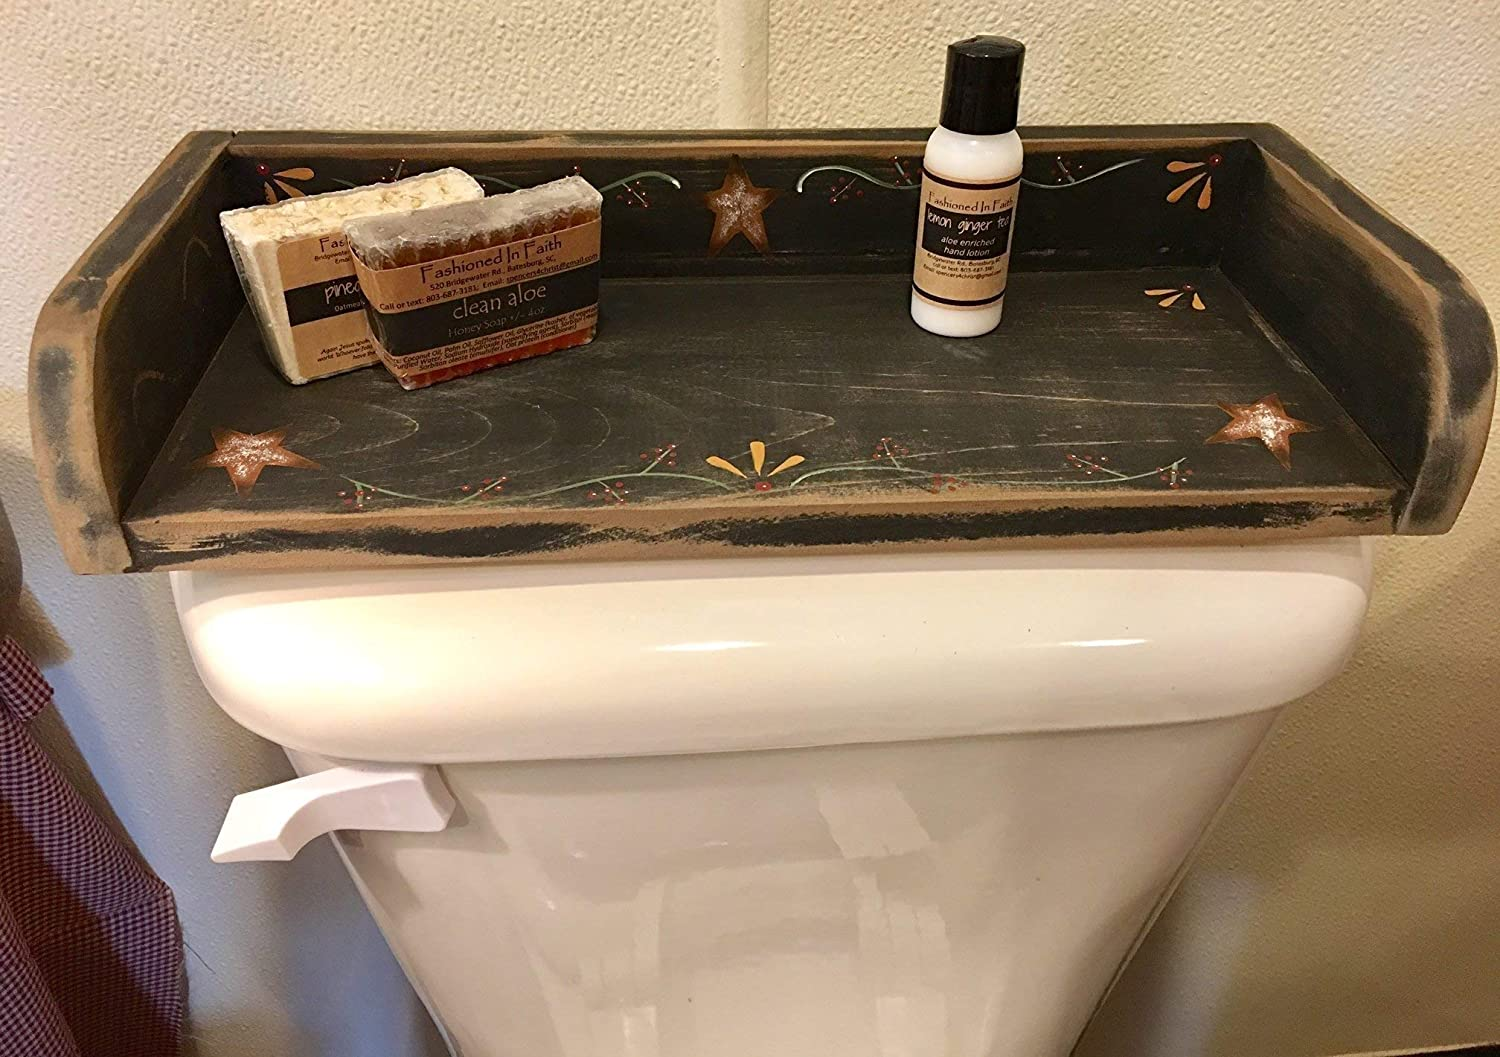 Farmhouse Hand Painted Wood Toilet Tank Tray-Distressed Rustic Handcrafted Bathroom Decor